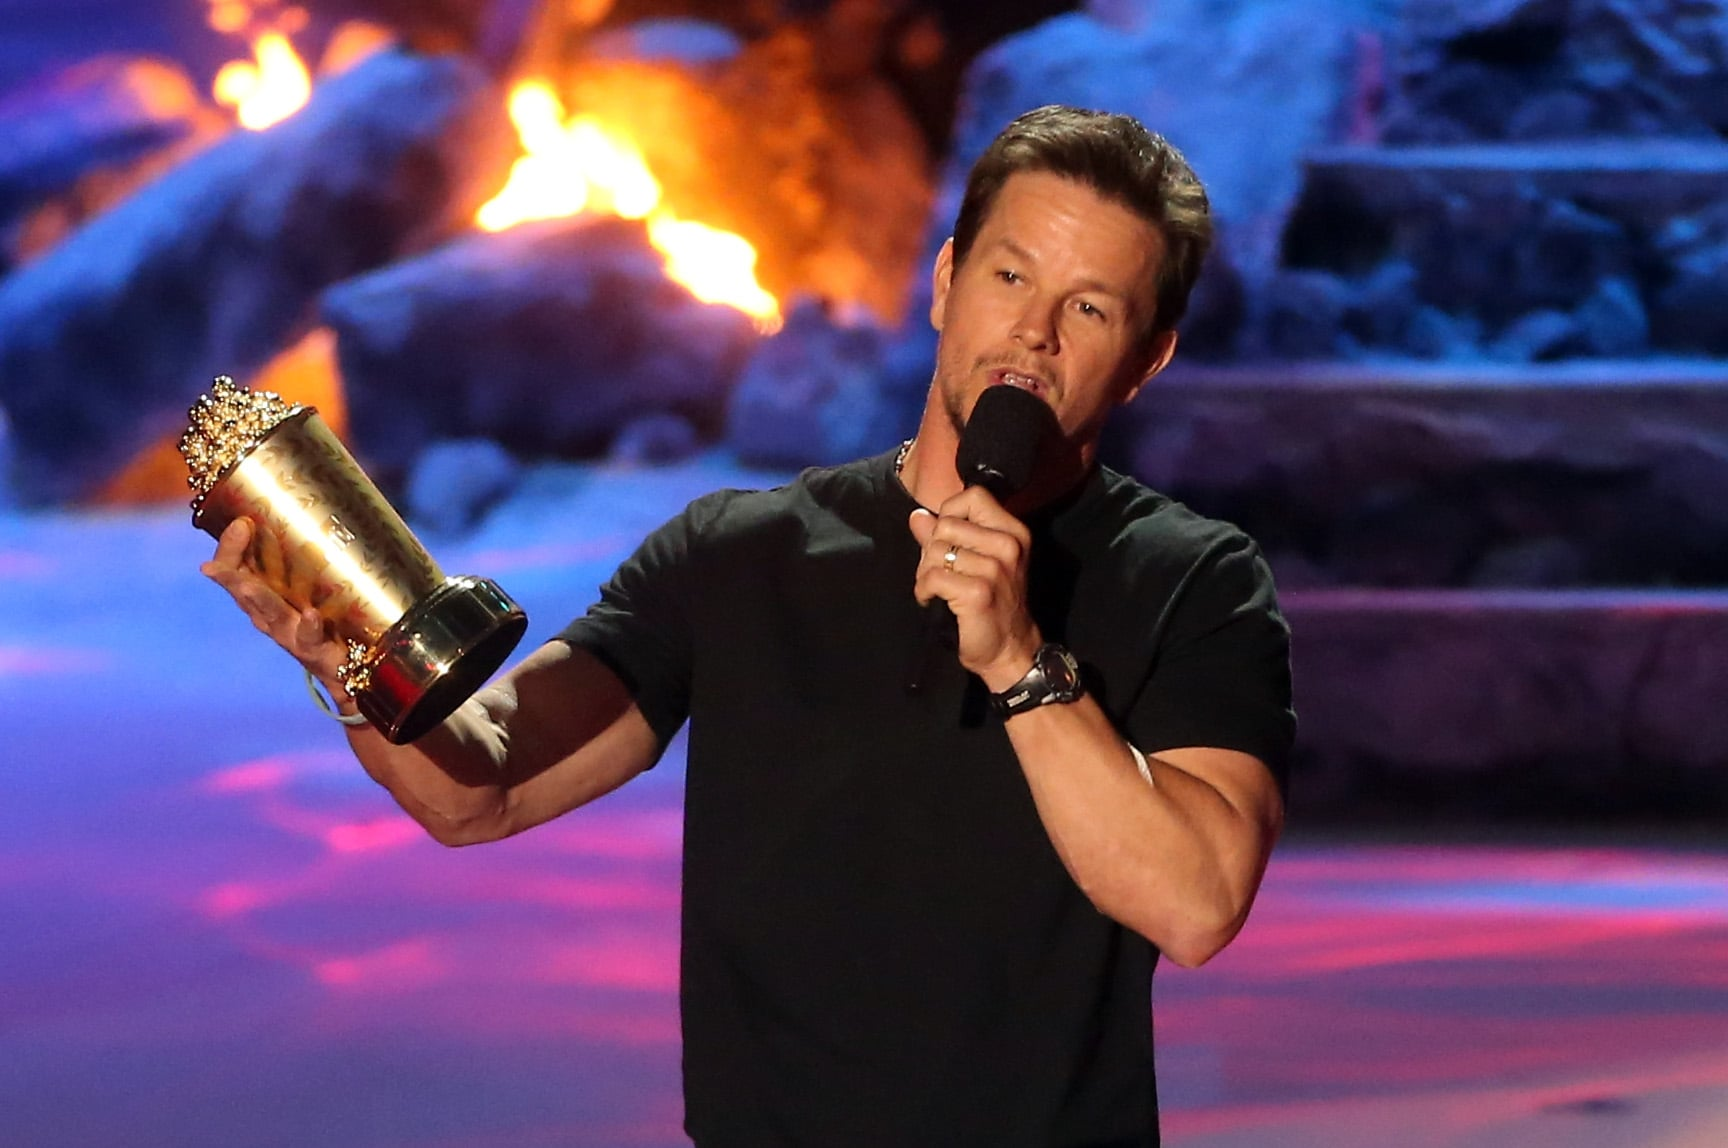 Mark Wahlberg's All-Over-the-Place Acceptance Speech